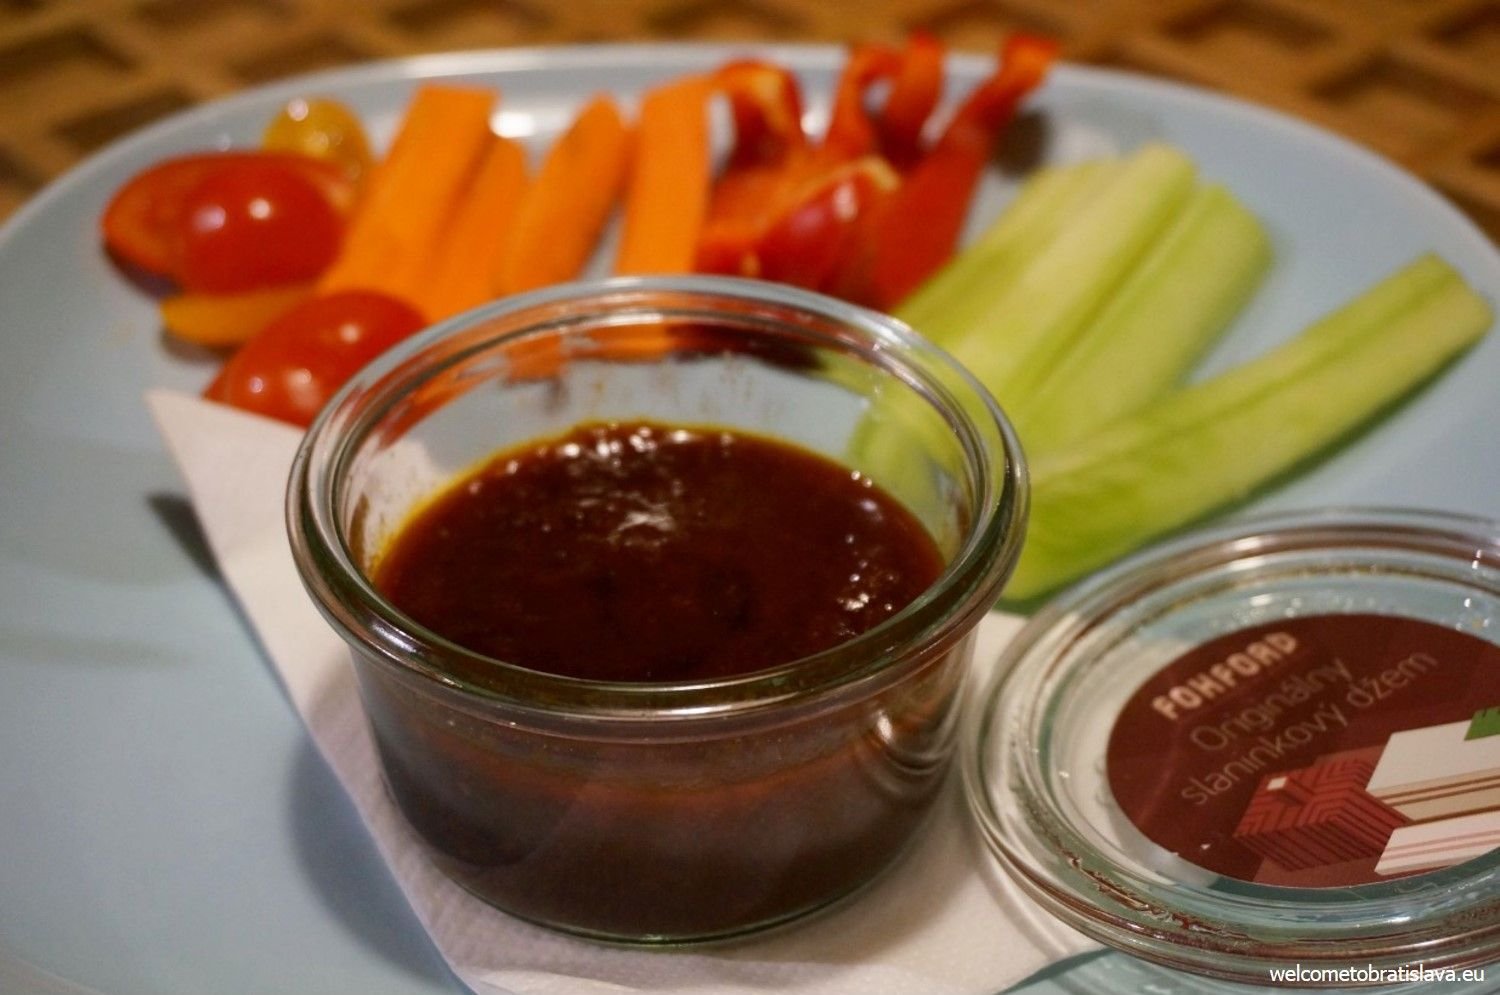 One of the most delicious spreads or jams is their bacon jam which can be served with vegetables or bread.